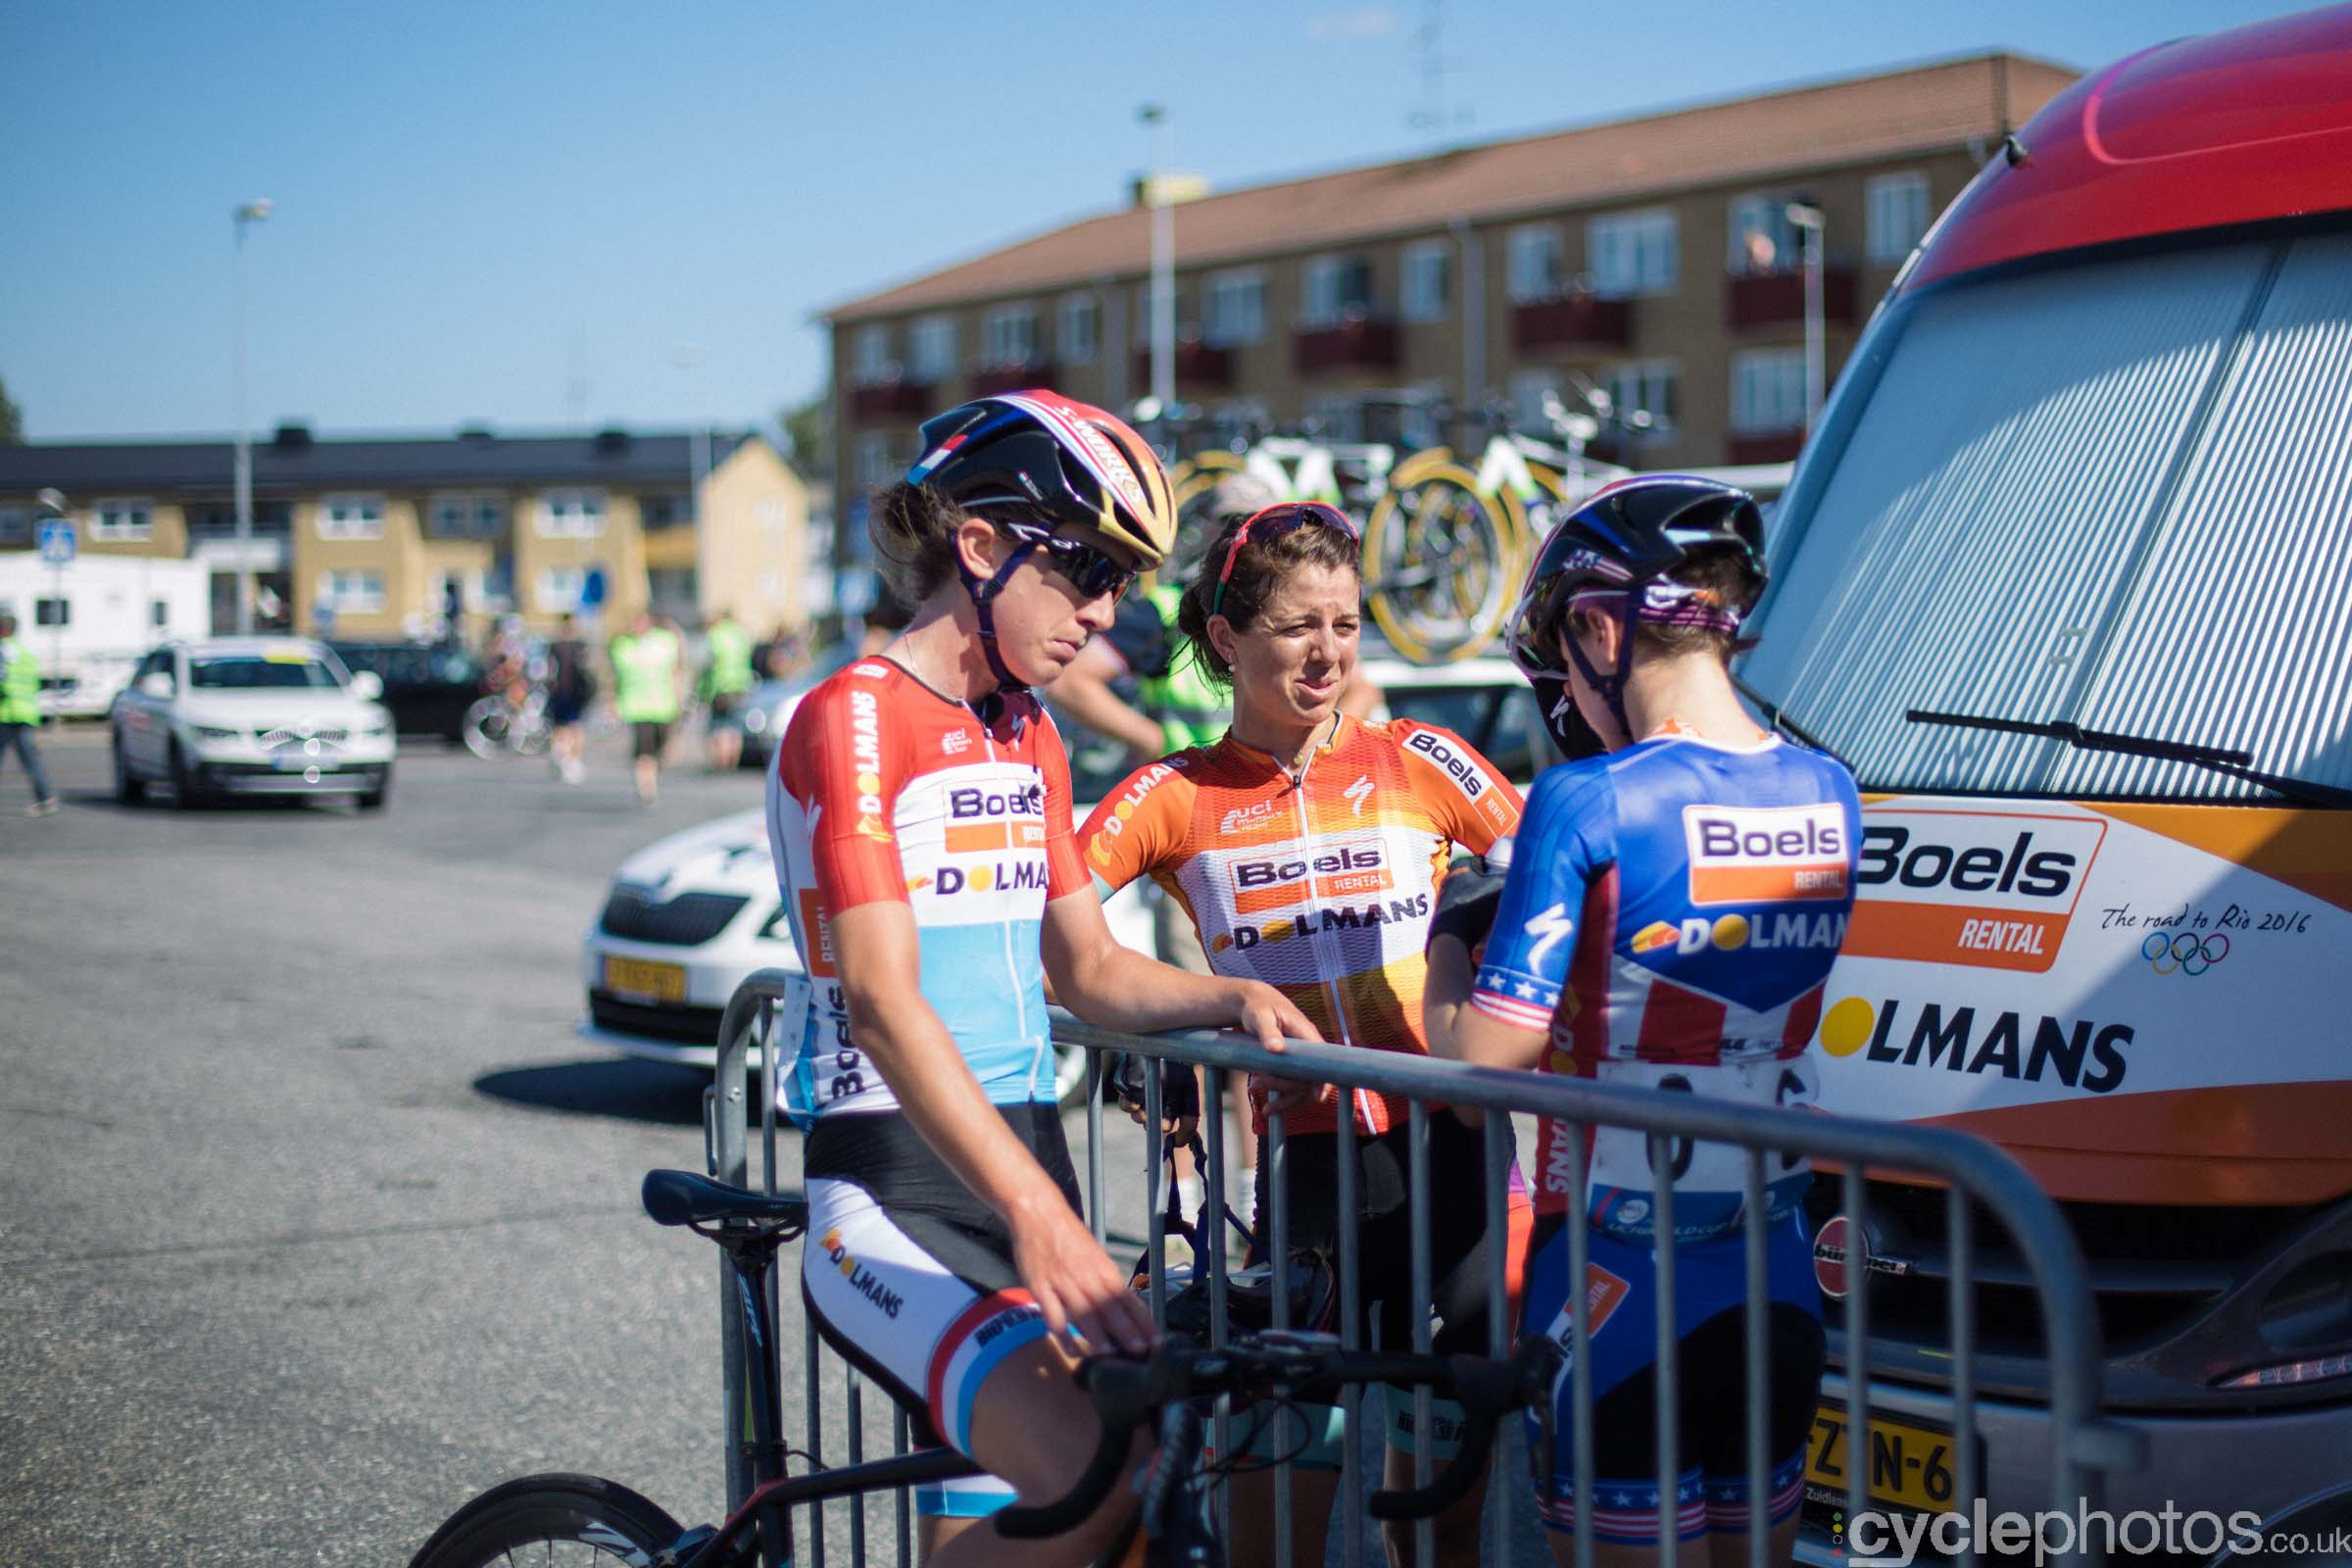 Boels-Dolmans riders after the 2015 edition of the Vargarda women's World Cup race